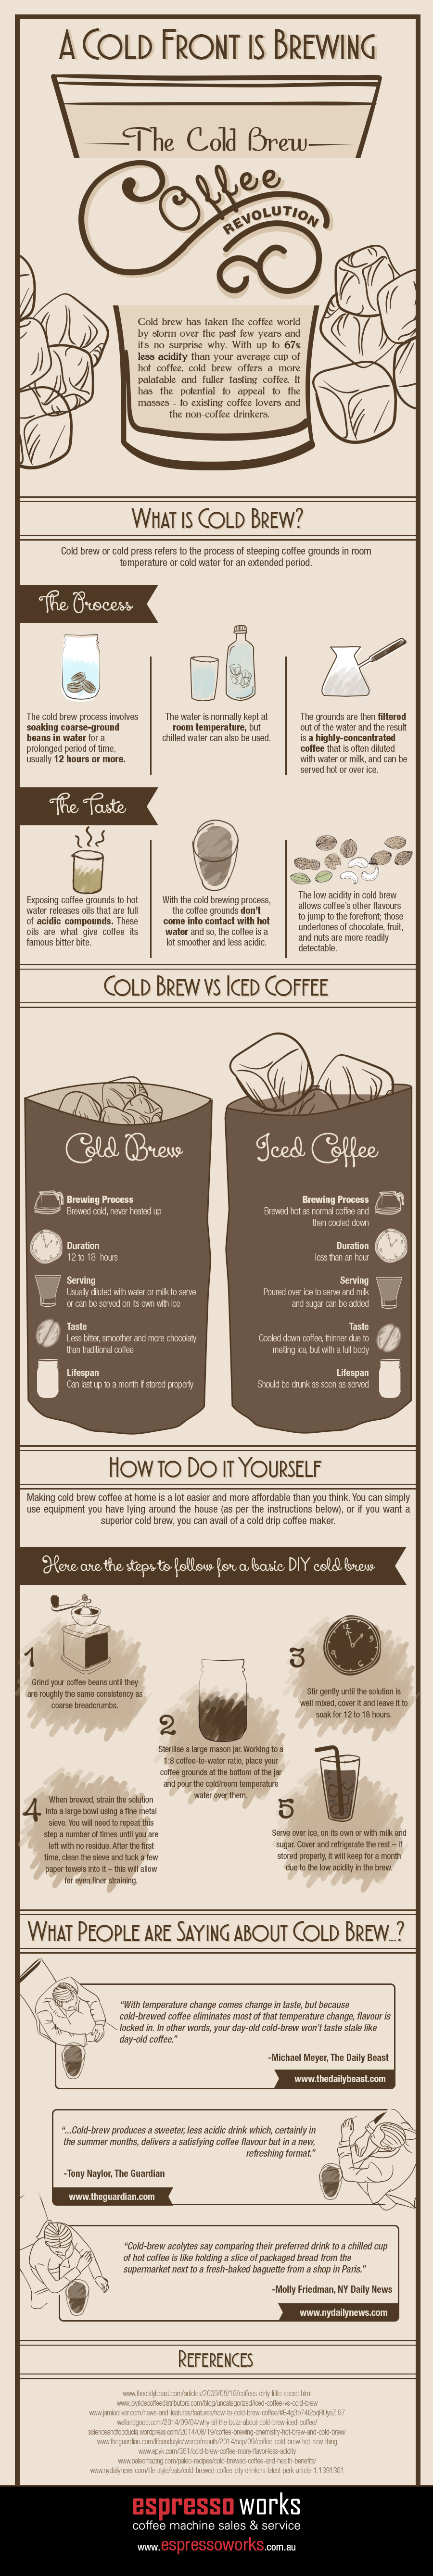 cold-brew-coffee-revolution-infographic.jpg